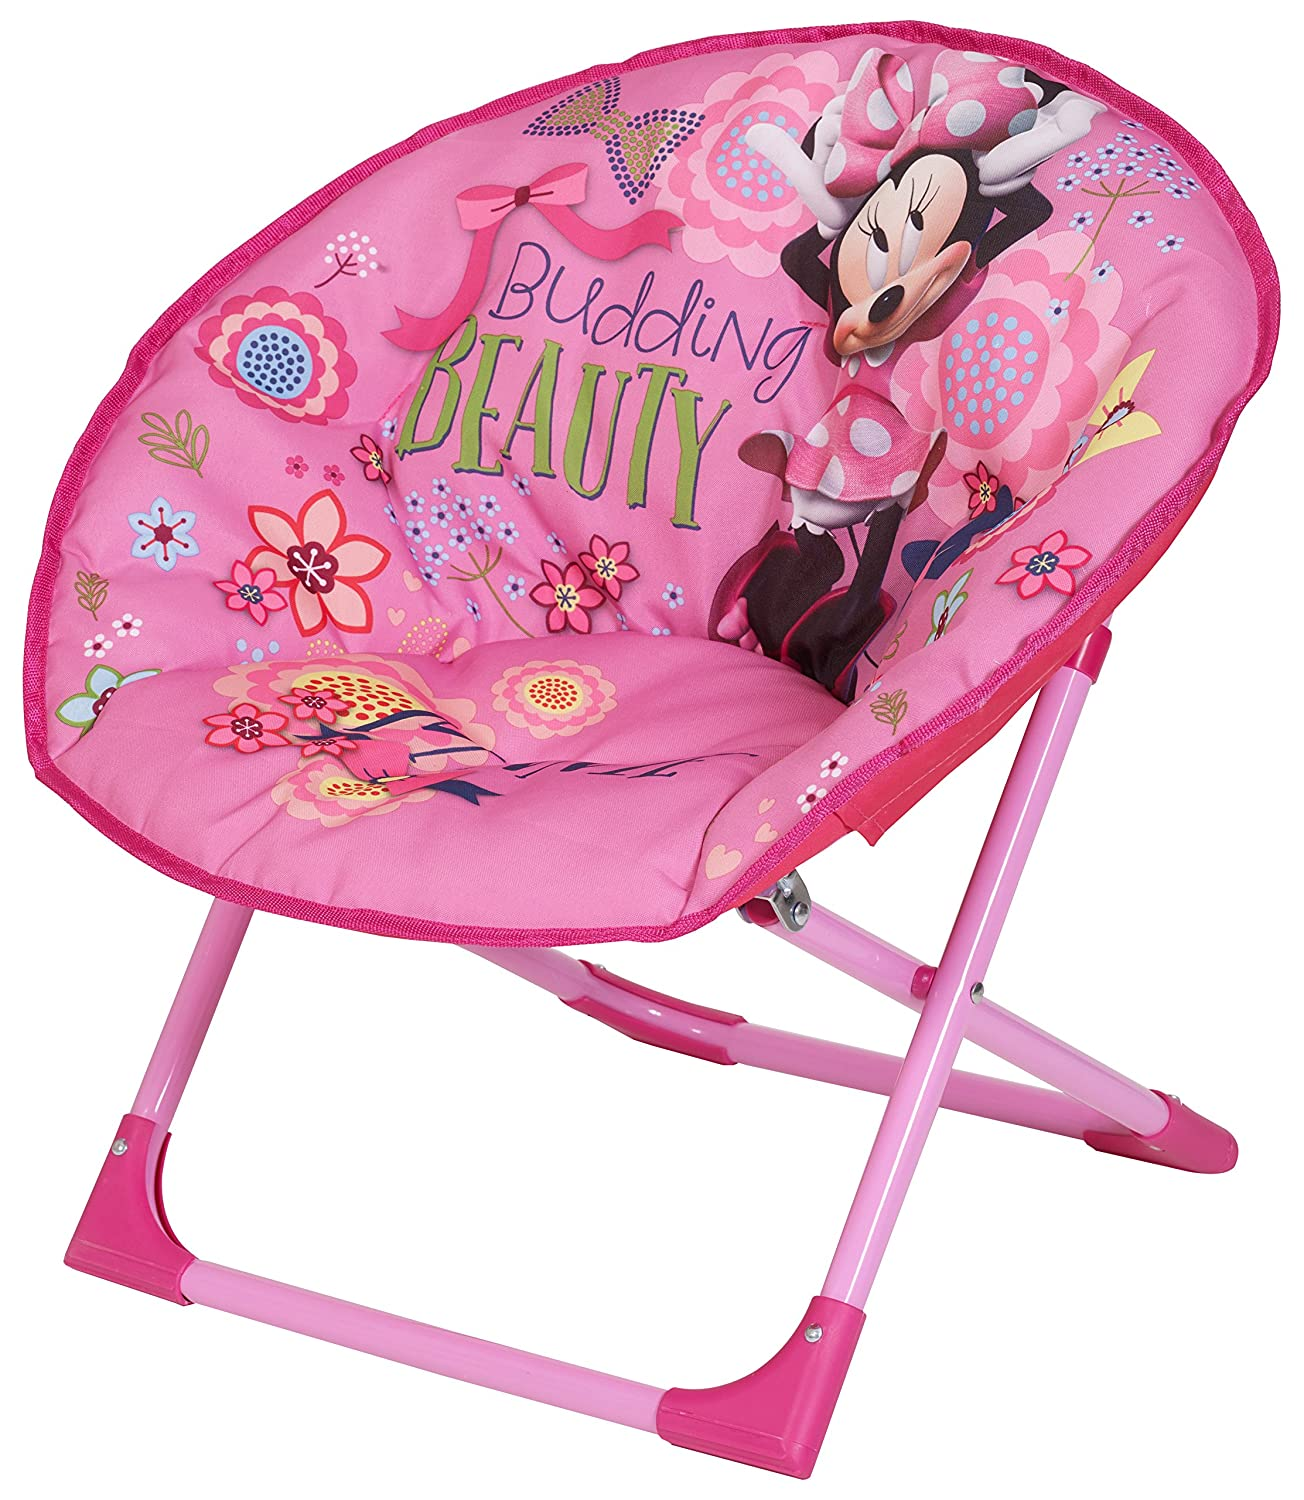 MOON CHAIR Disney Personajes de Dibujos Animados Plegable ...